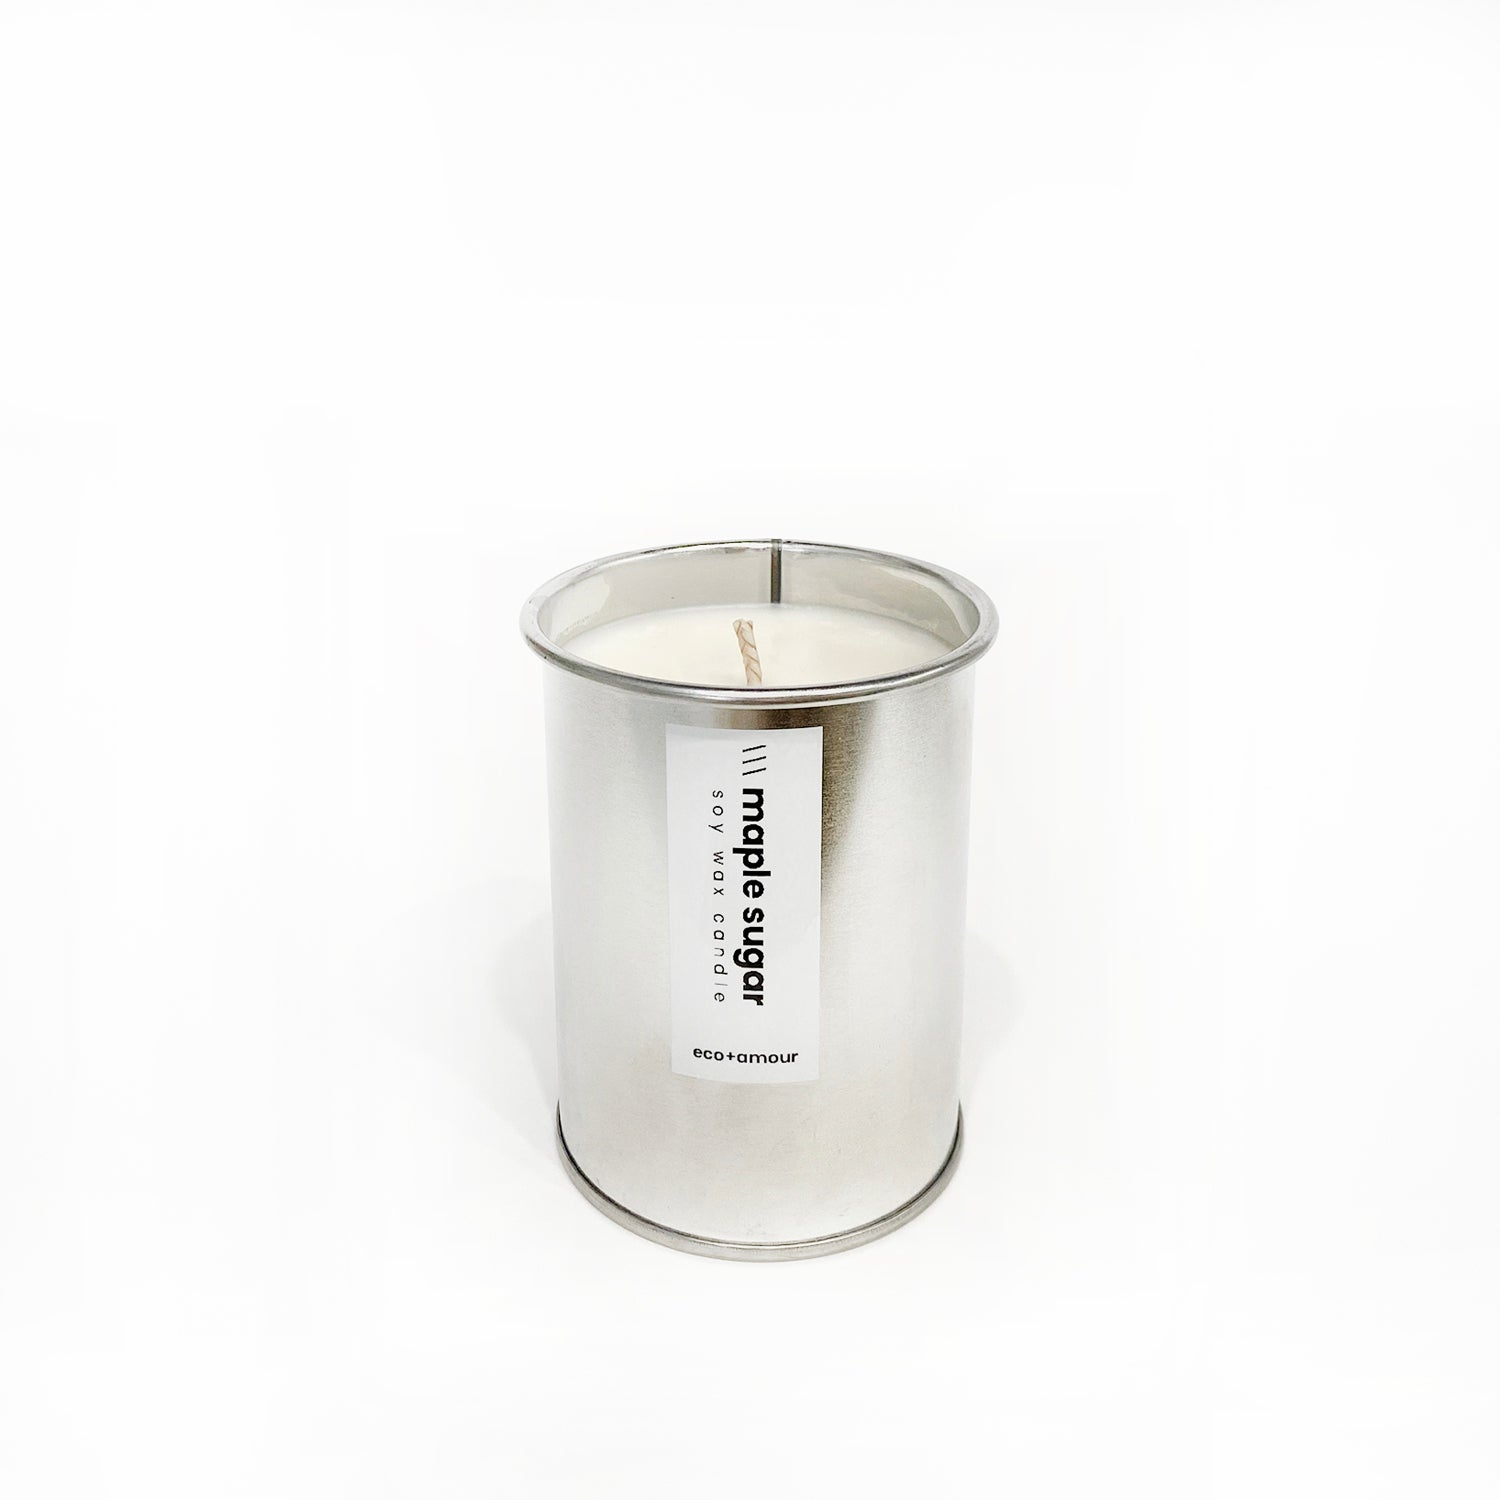 Maple Sugar, Soy Candle | eco+amour